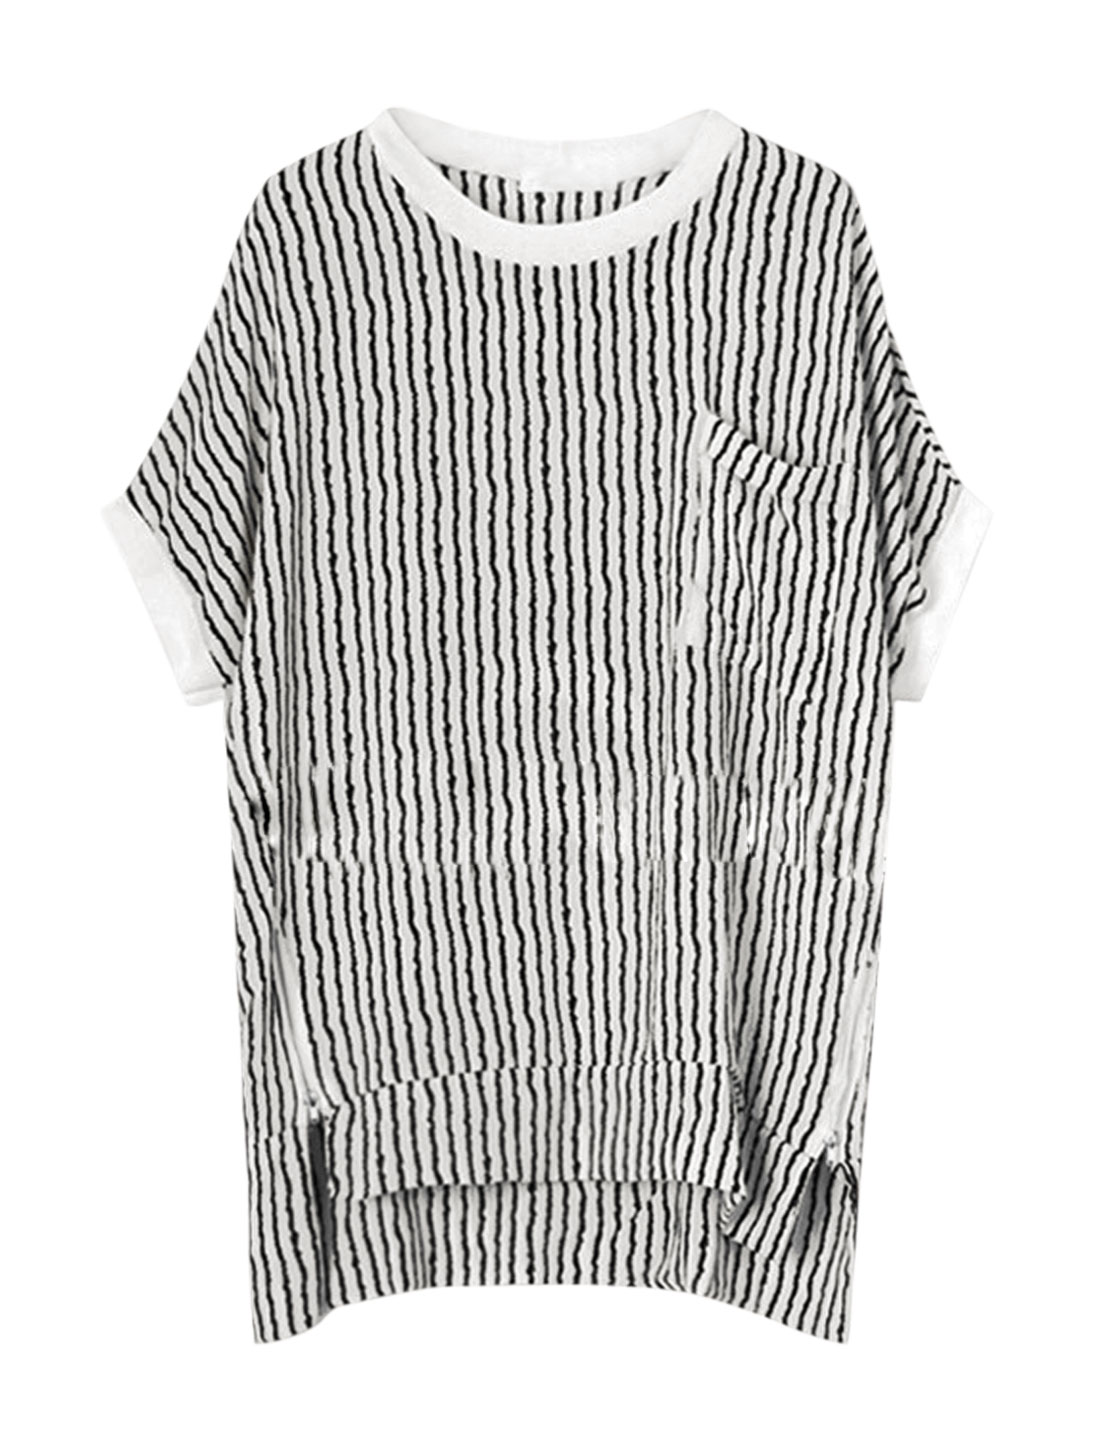 Woman Vertical Stripes Zip Embellished Round Neck Tunic Top White M